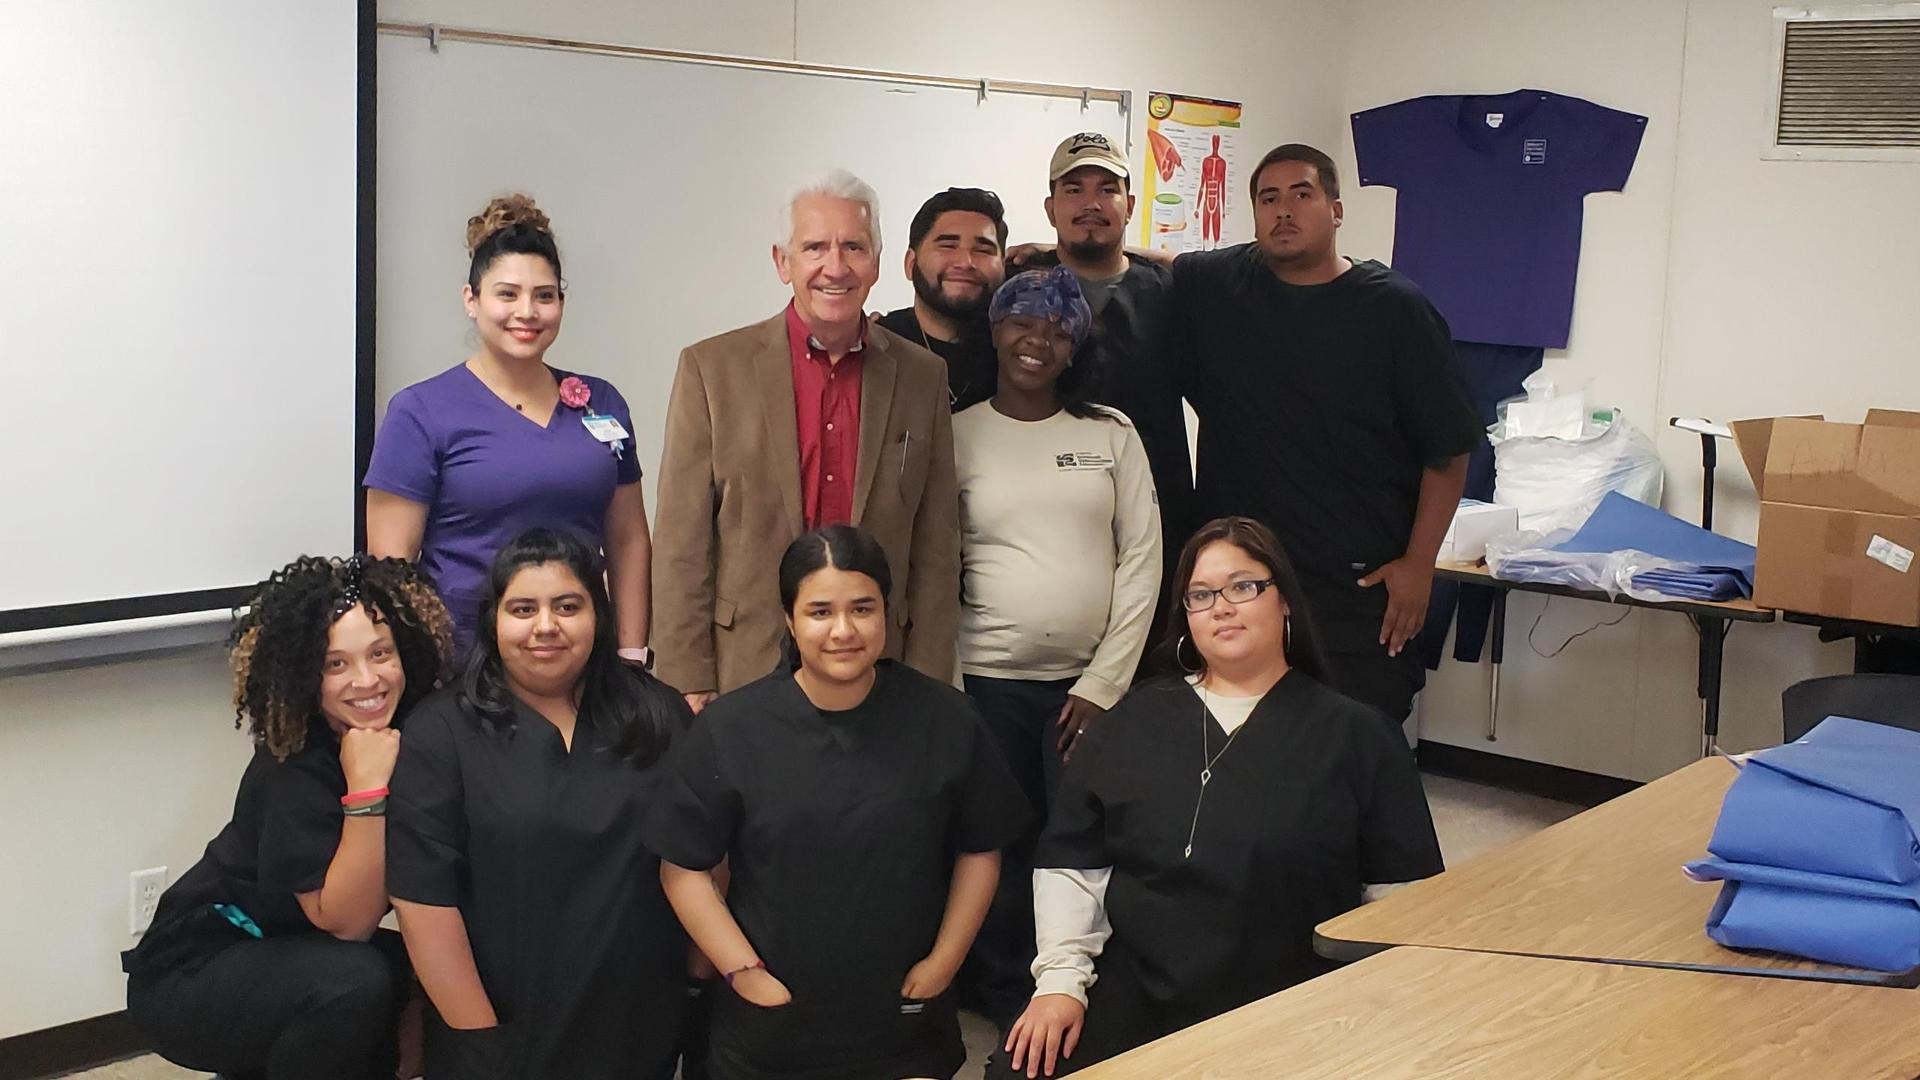 Fresno healthcare students' visit from a Congressman